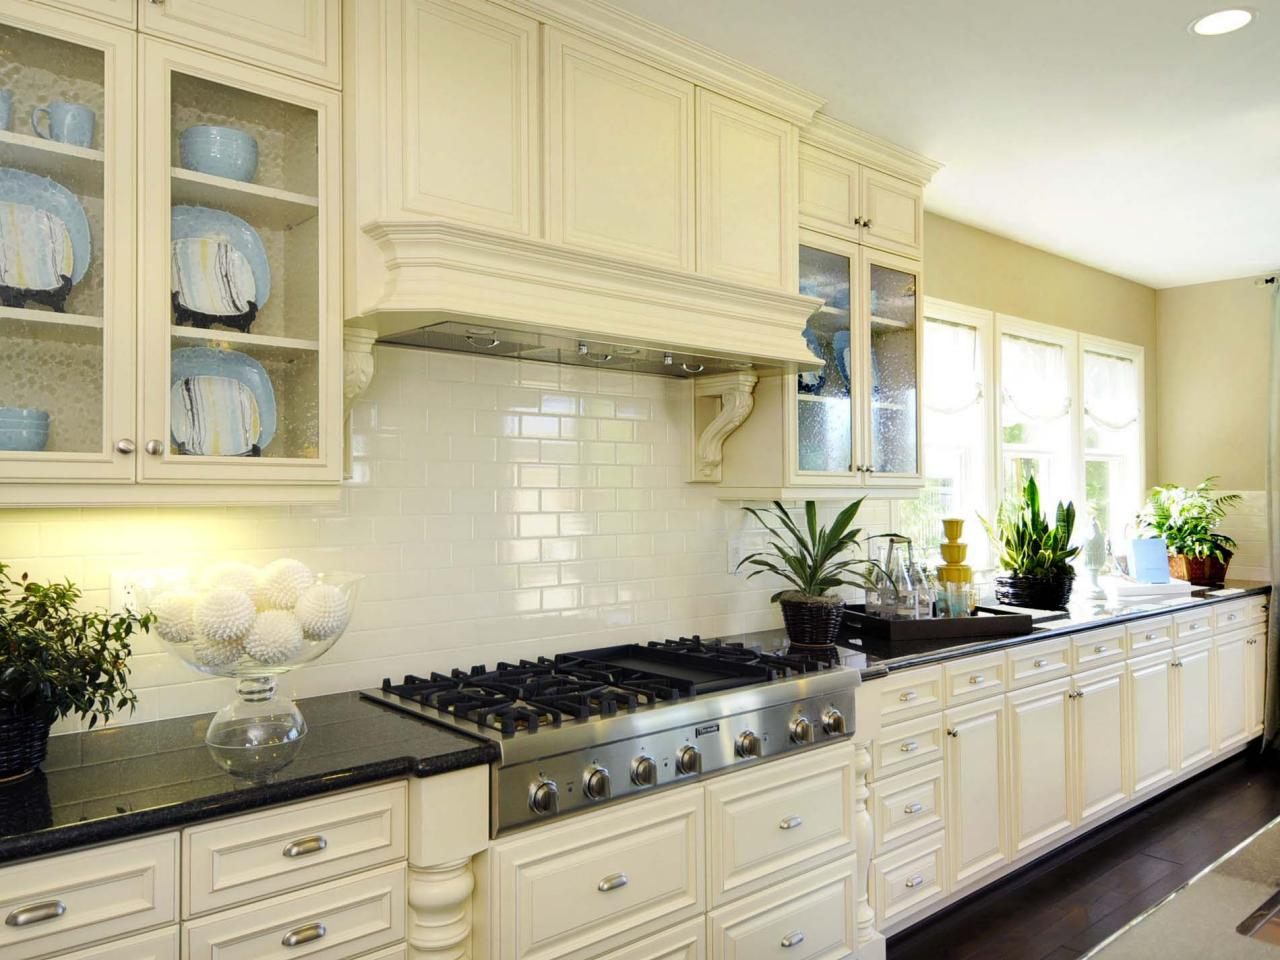 kitchen backsplash tile ideas - Kitchen Tiling Ideas